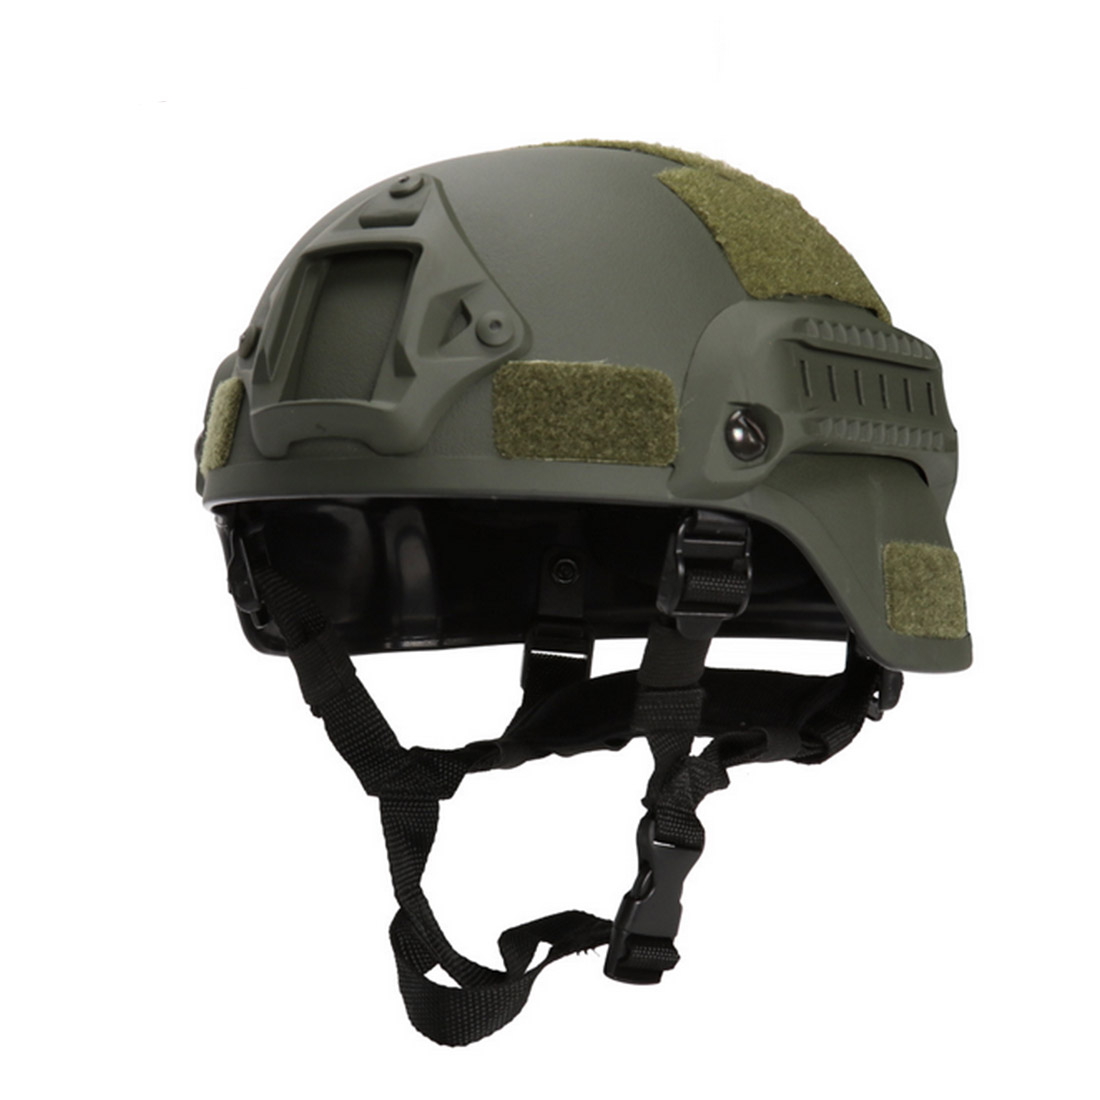 Helmet With Safety Protective Goggle Lightweight High Quality Protective Paintball Wargame Helmet Army Airsoft MH Tactical FAST